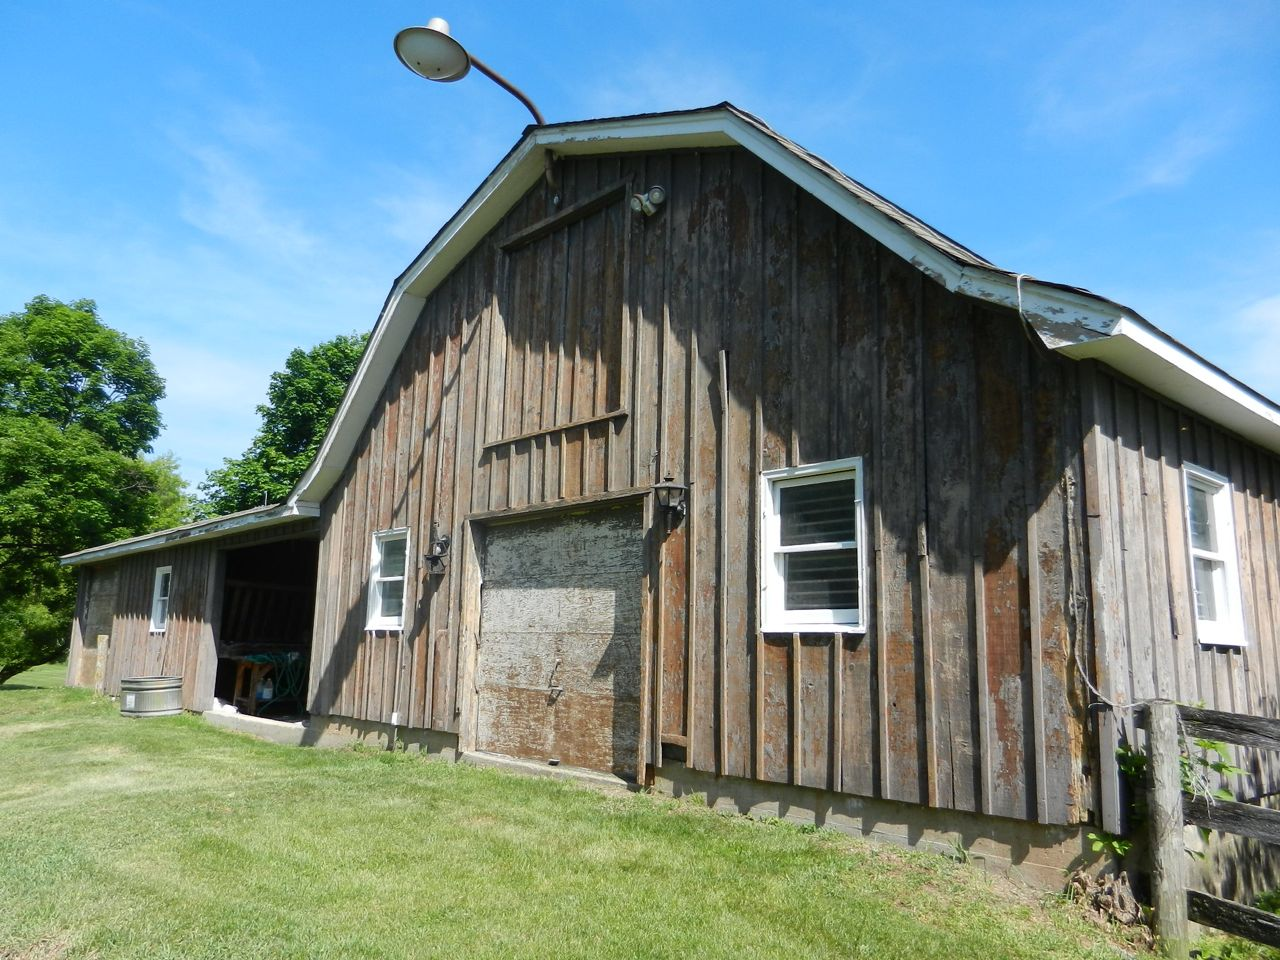 Getting The Old Barn Ready For Resale